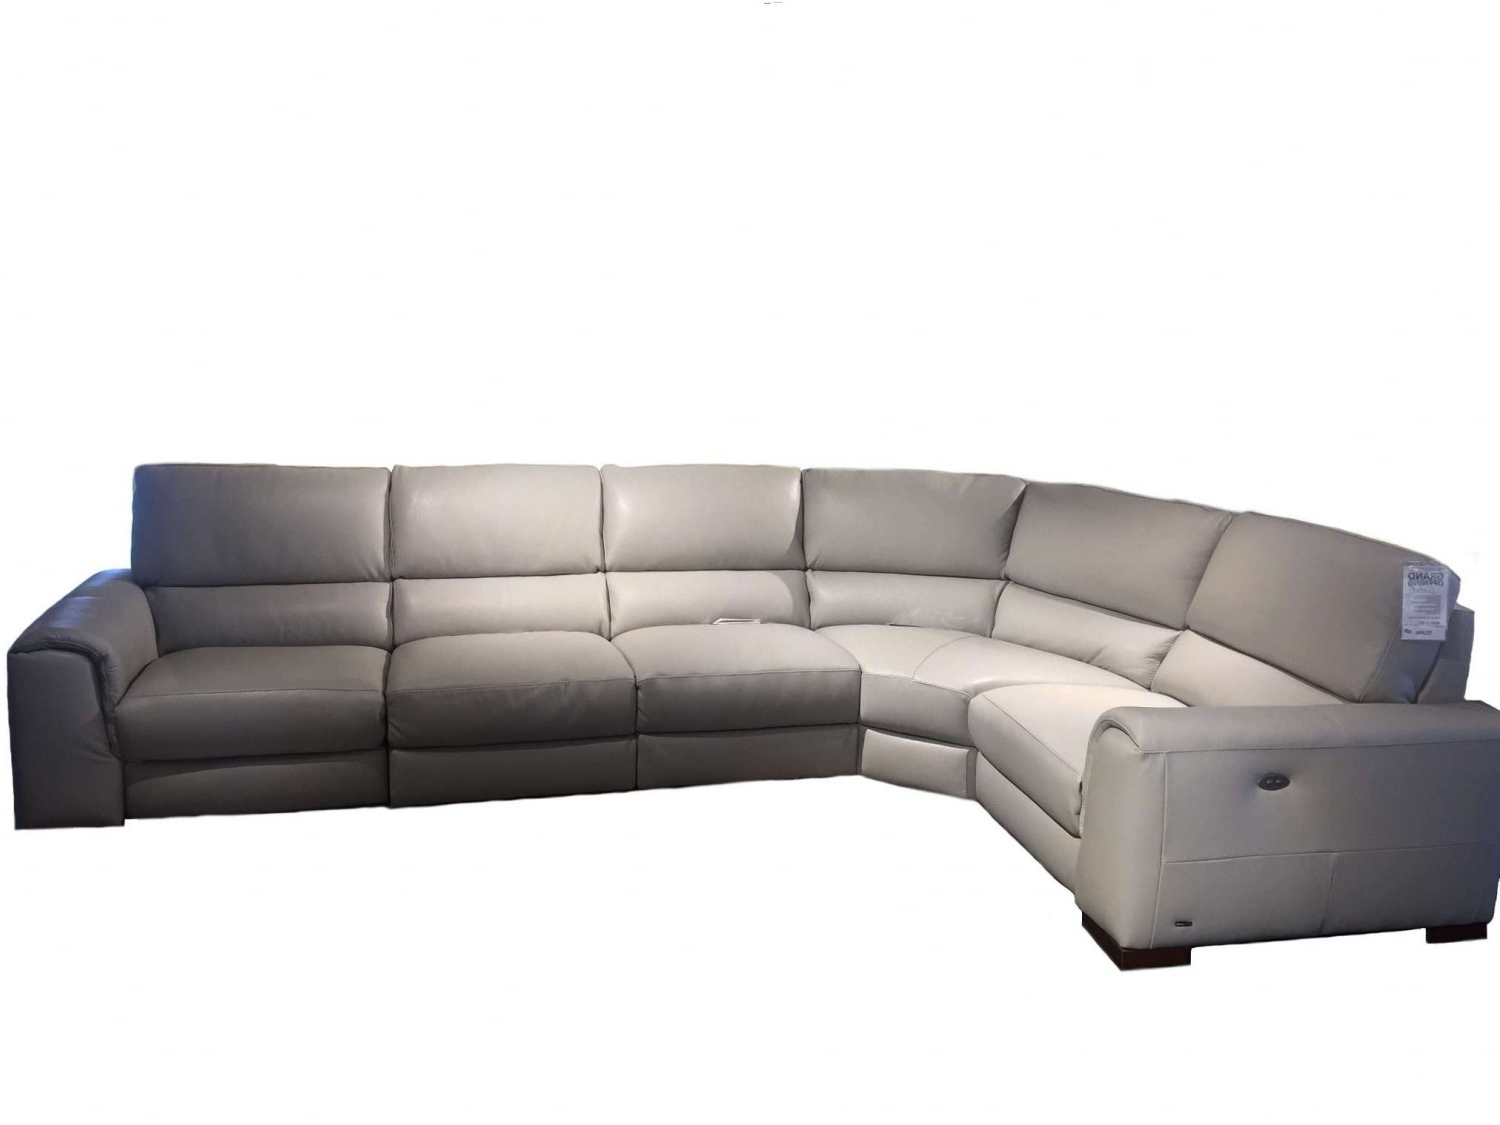 Kelowna Sectional Sofas In Famous Natuzzi Editions Davide Leather Sectional (View 17 of 20)